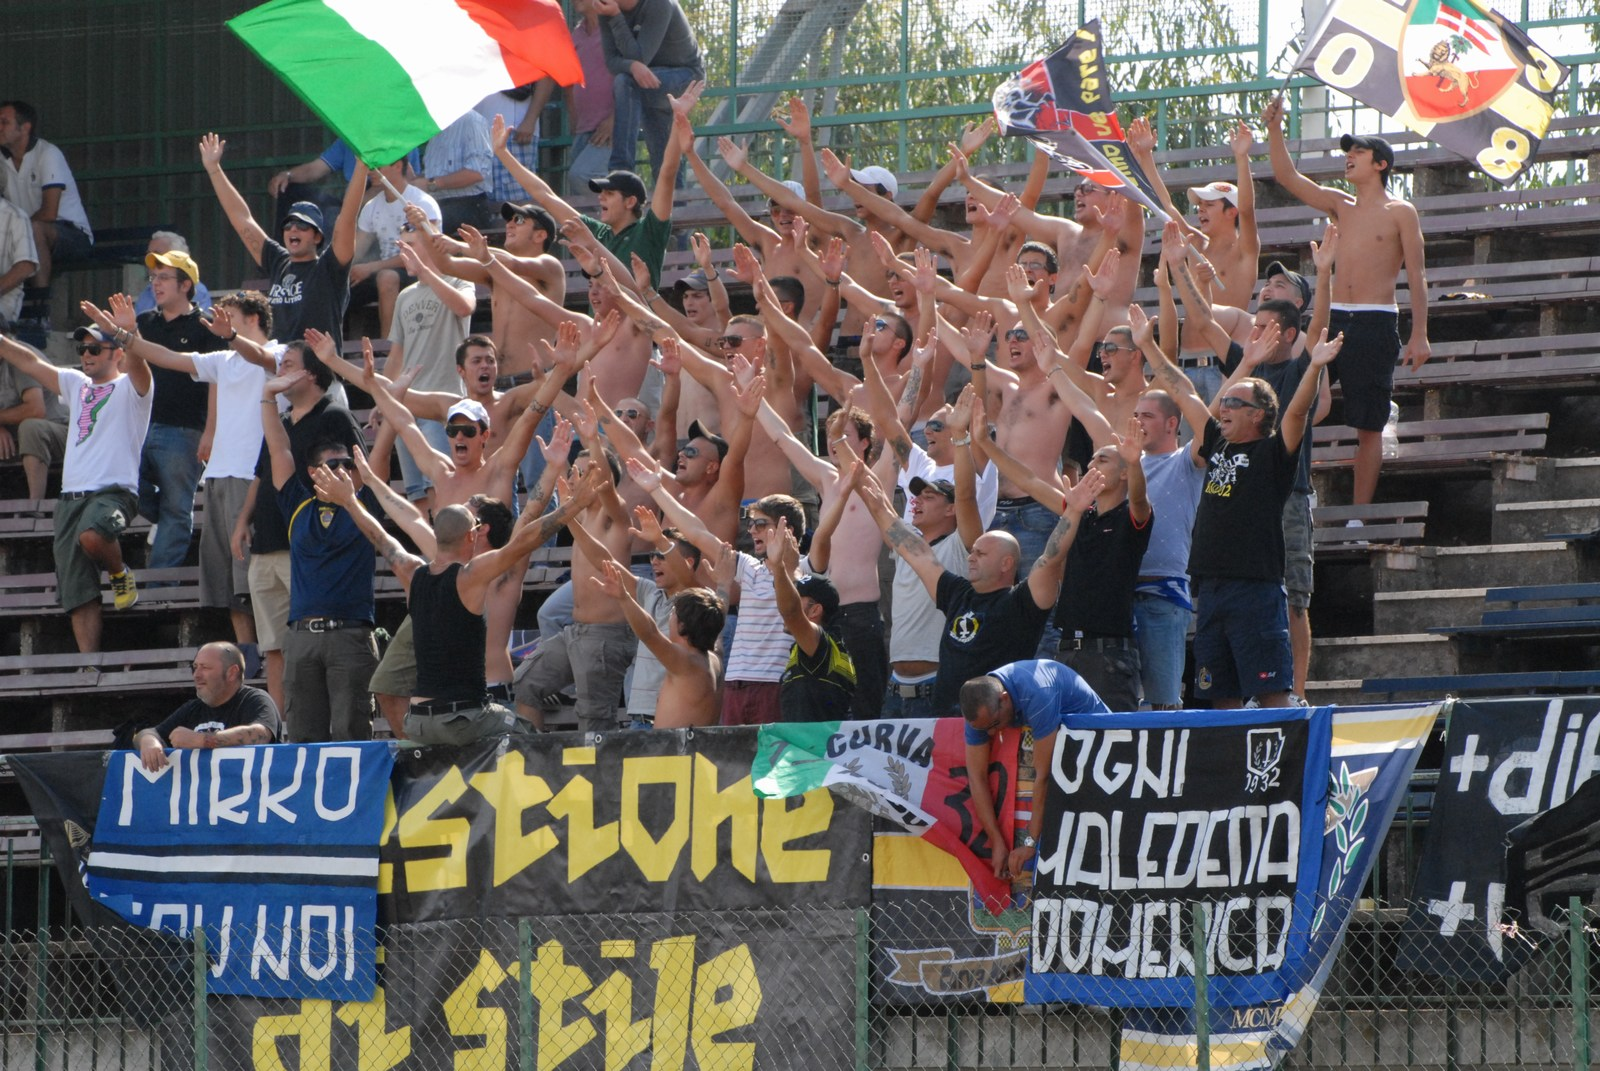 ultrasviterbo-3